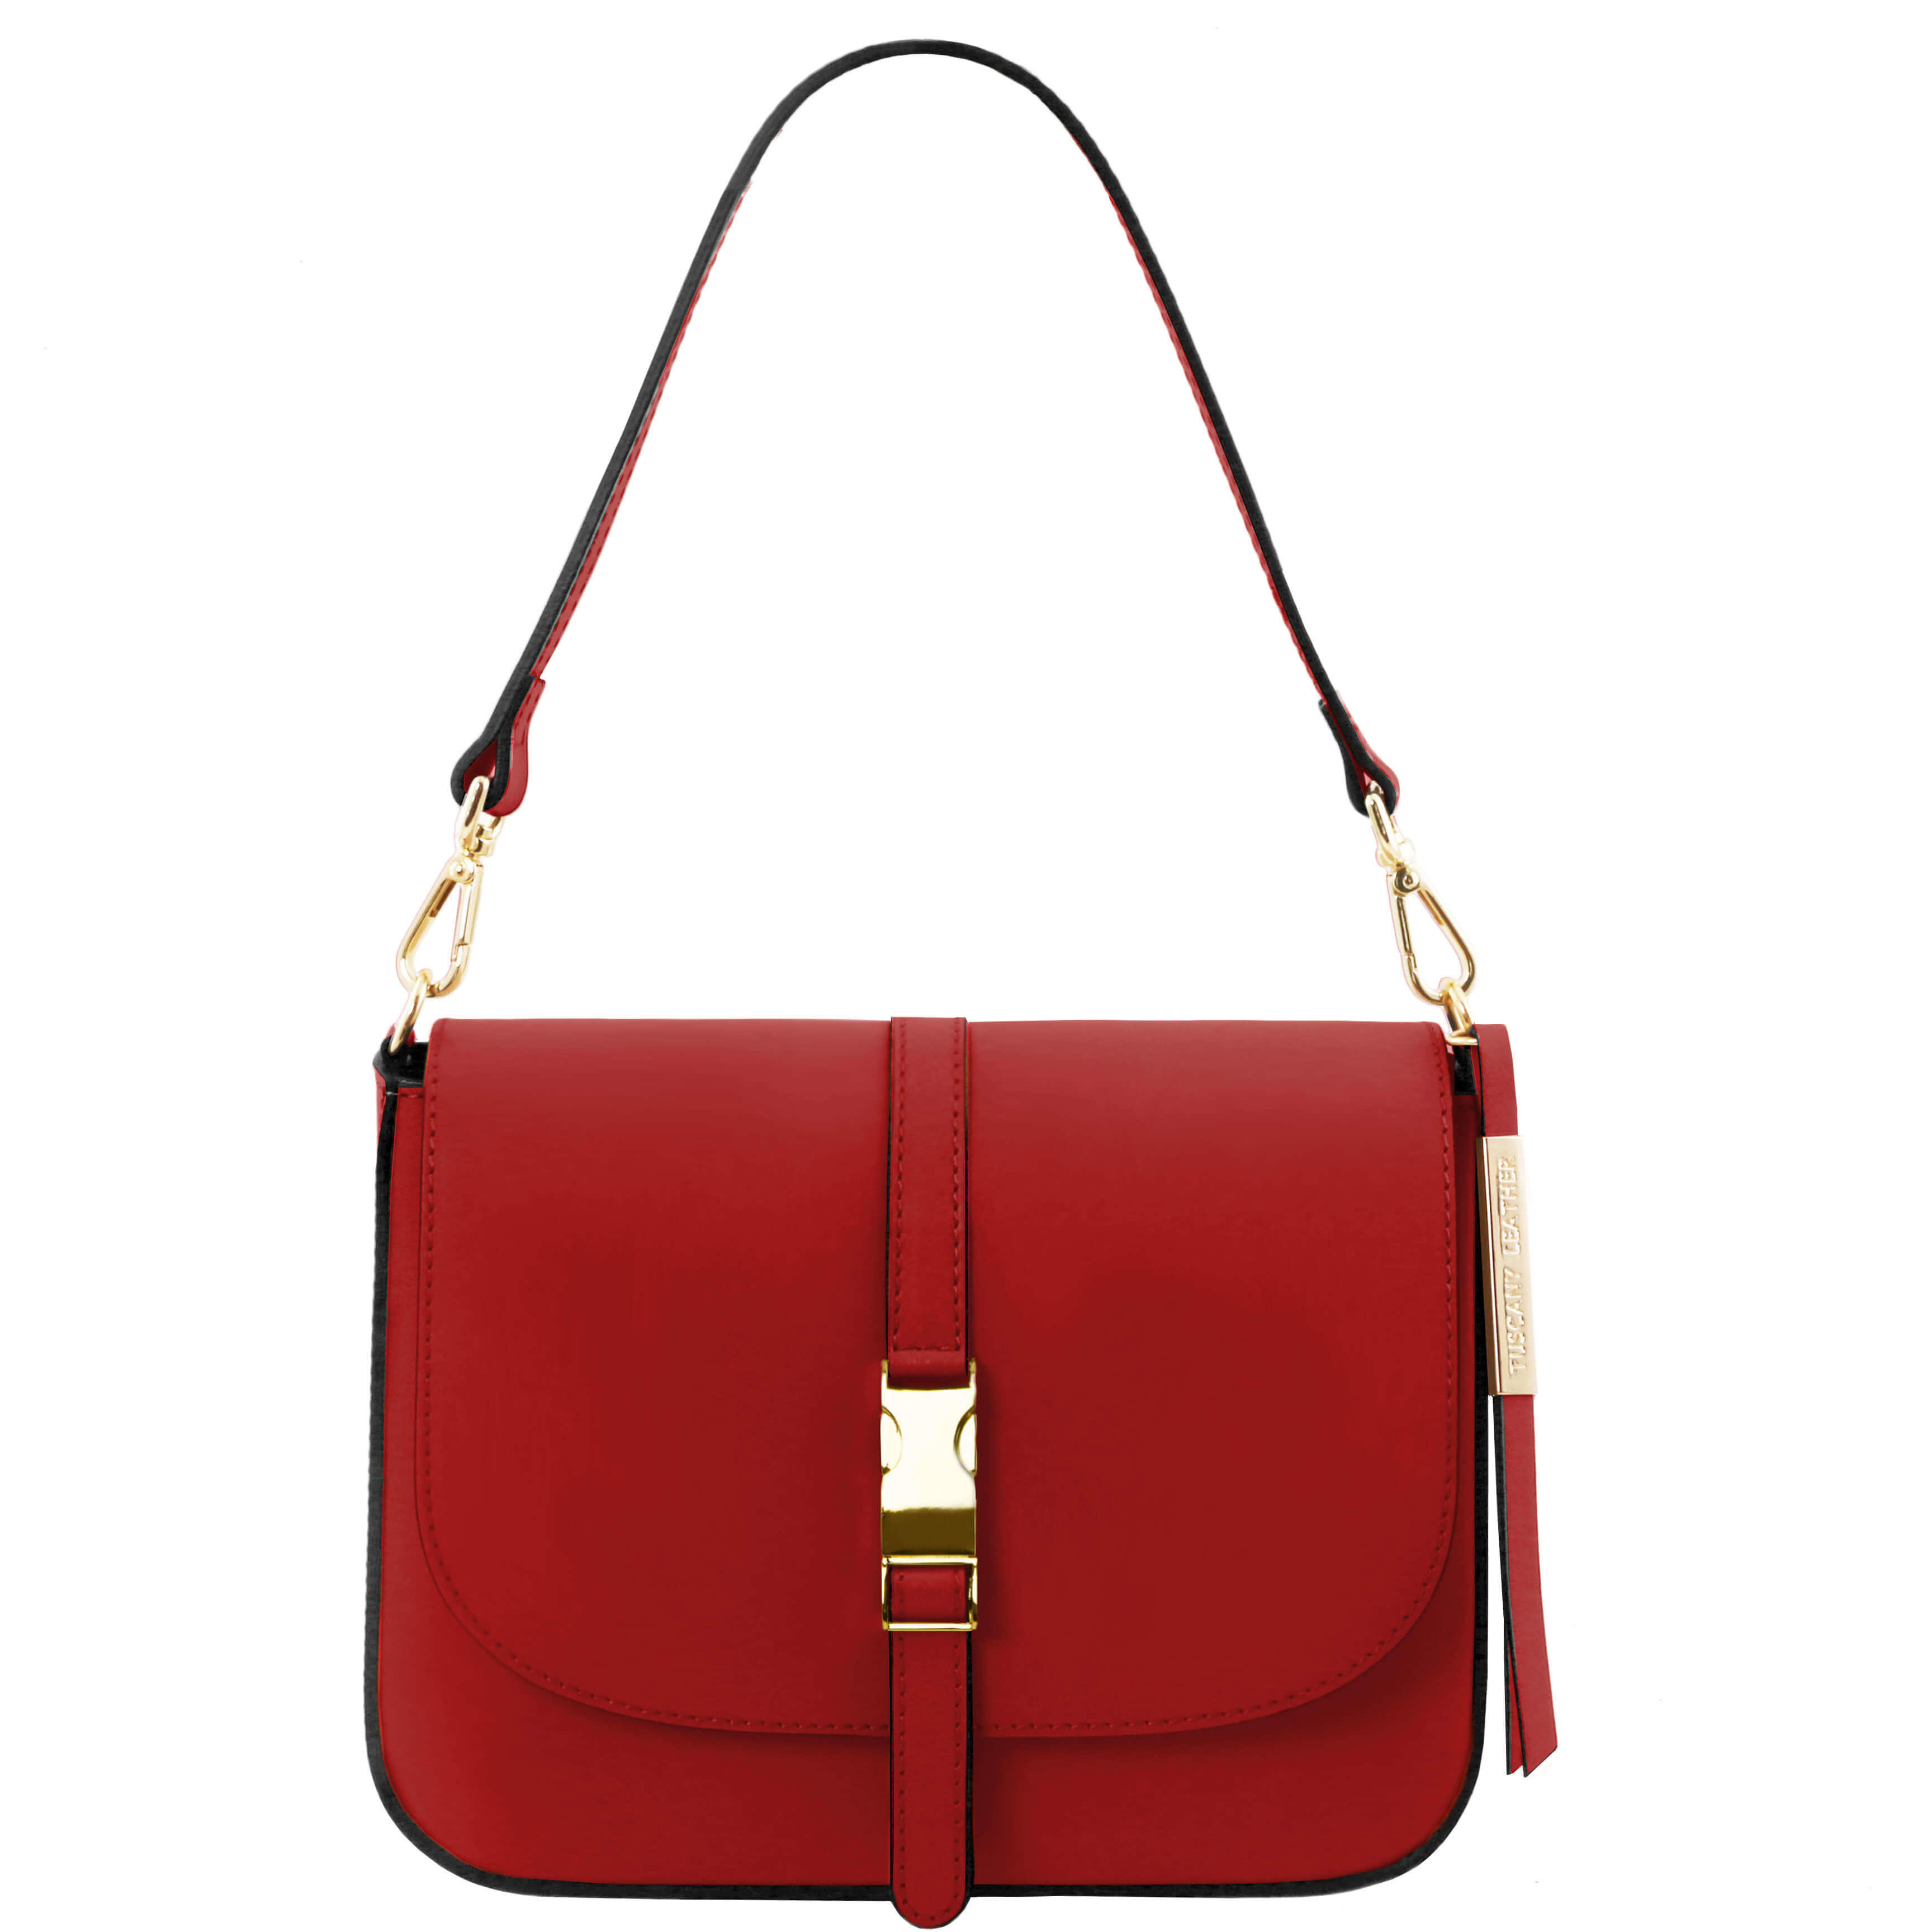 TL141598 Tuscany Leather Nausica Ruga Leather Shoulder Bag